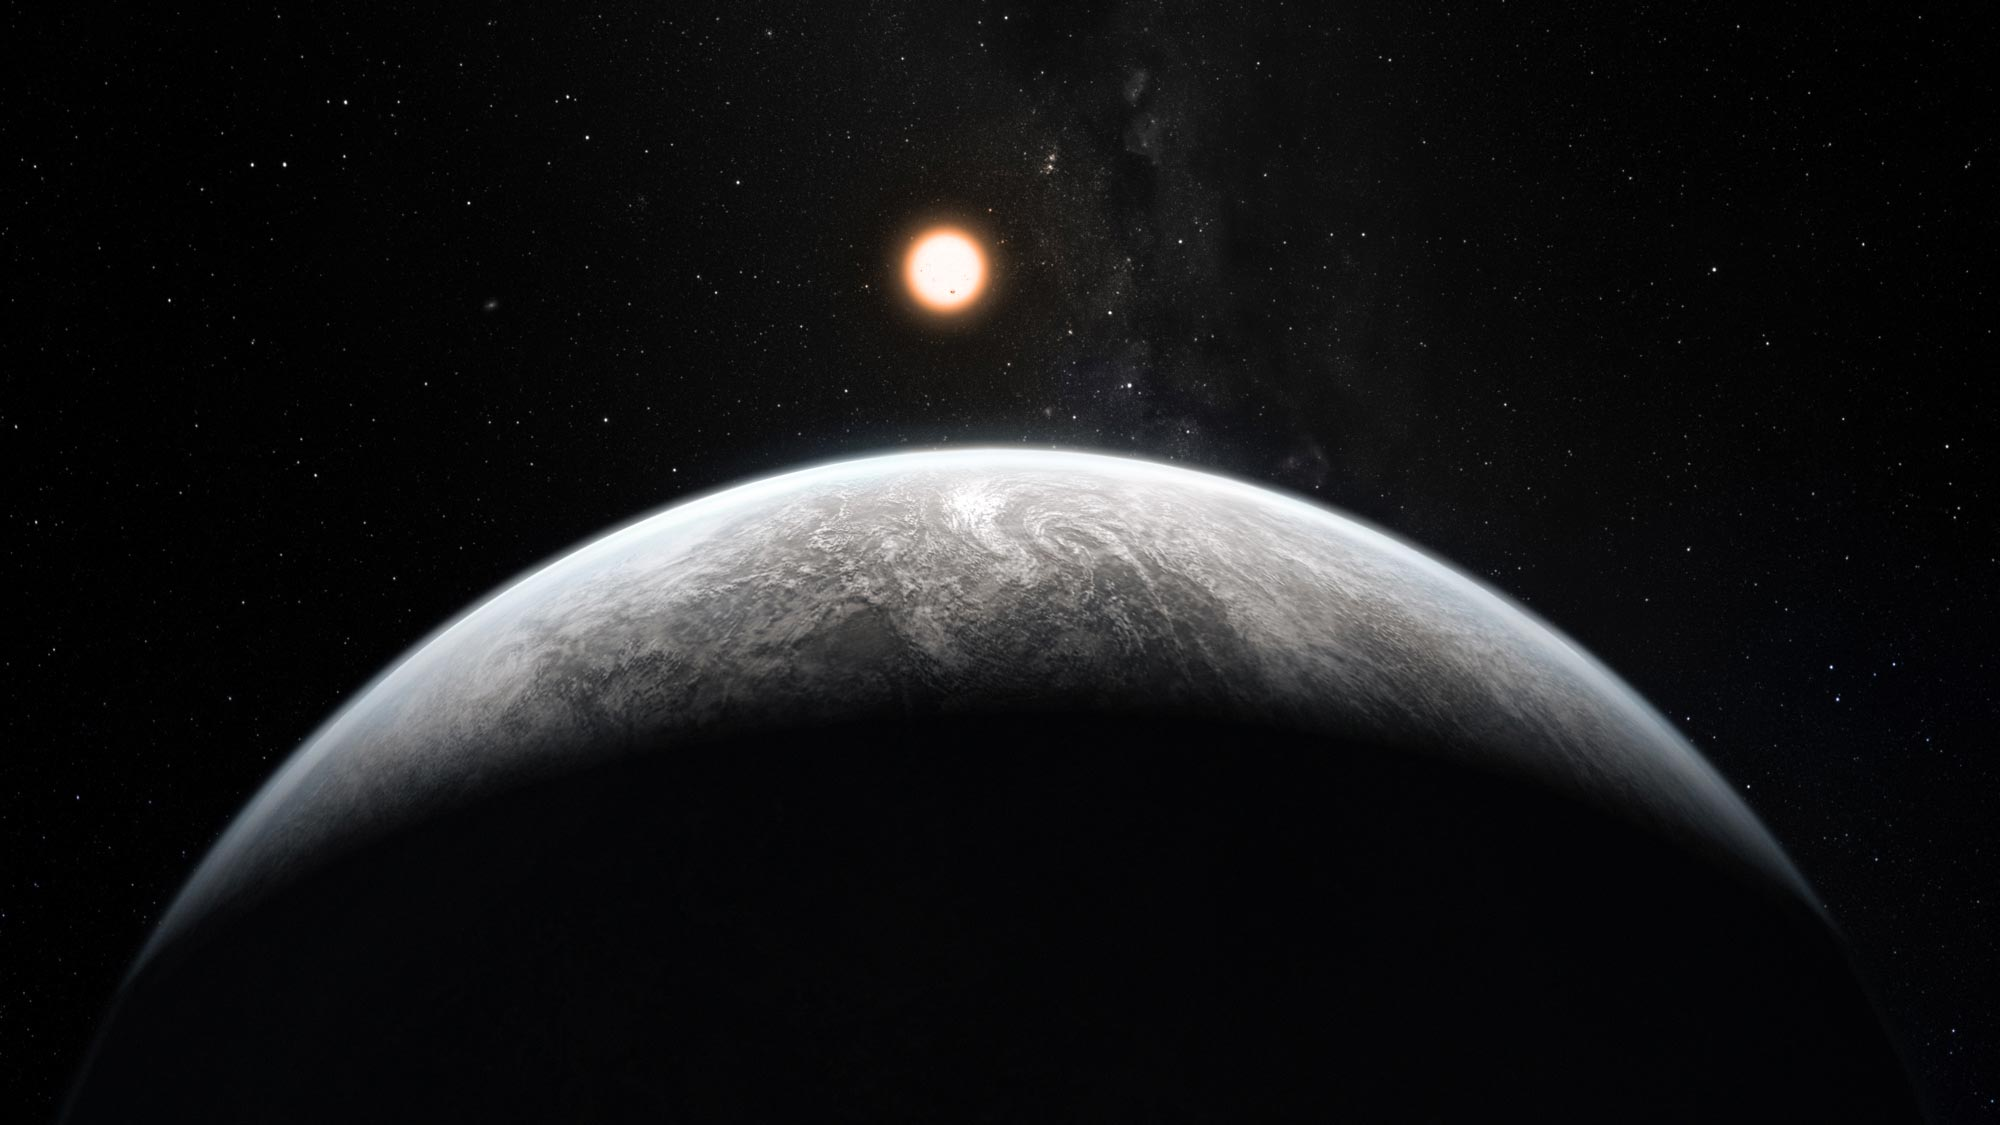 New Neptune-Sized Exoplanet Discovered With a Substantial Atmosphere Ripe for Study